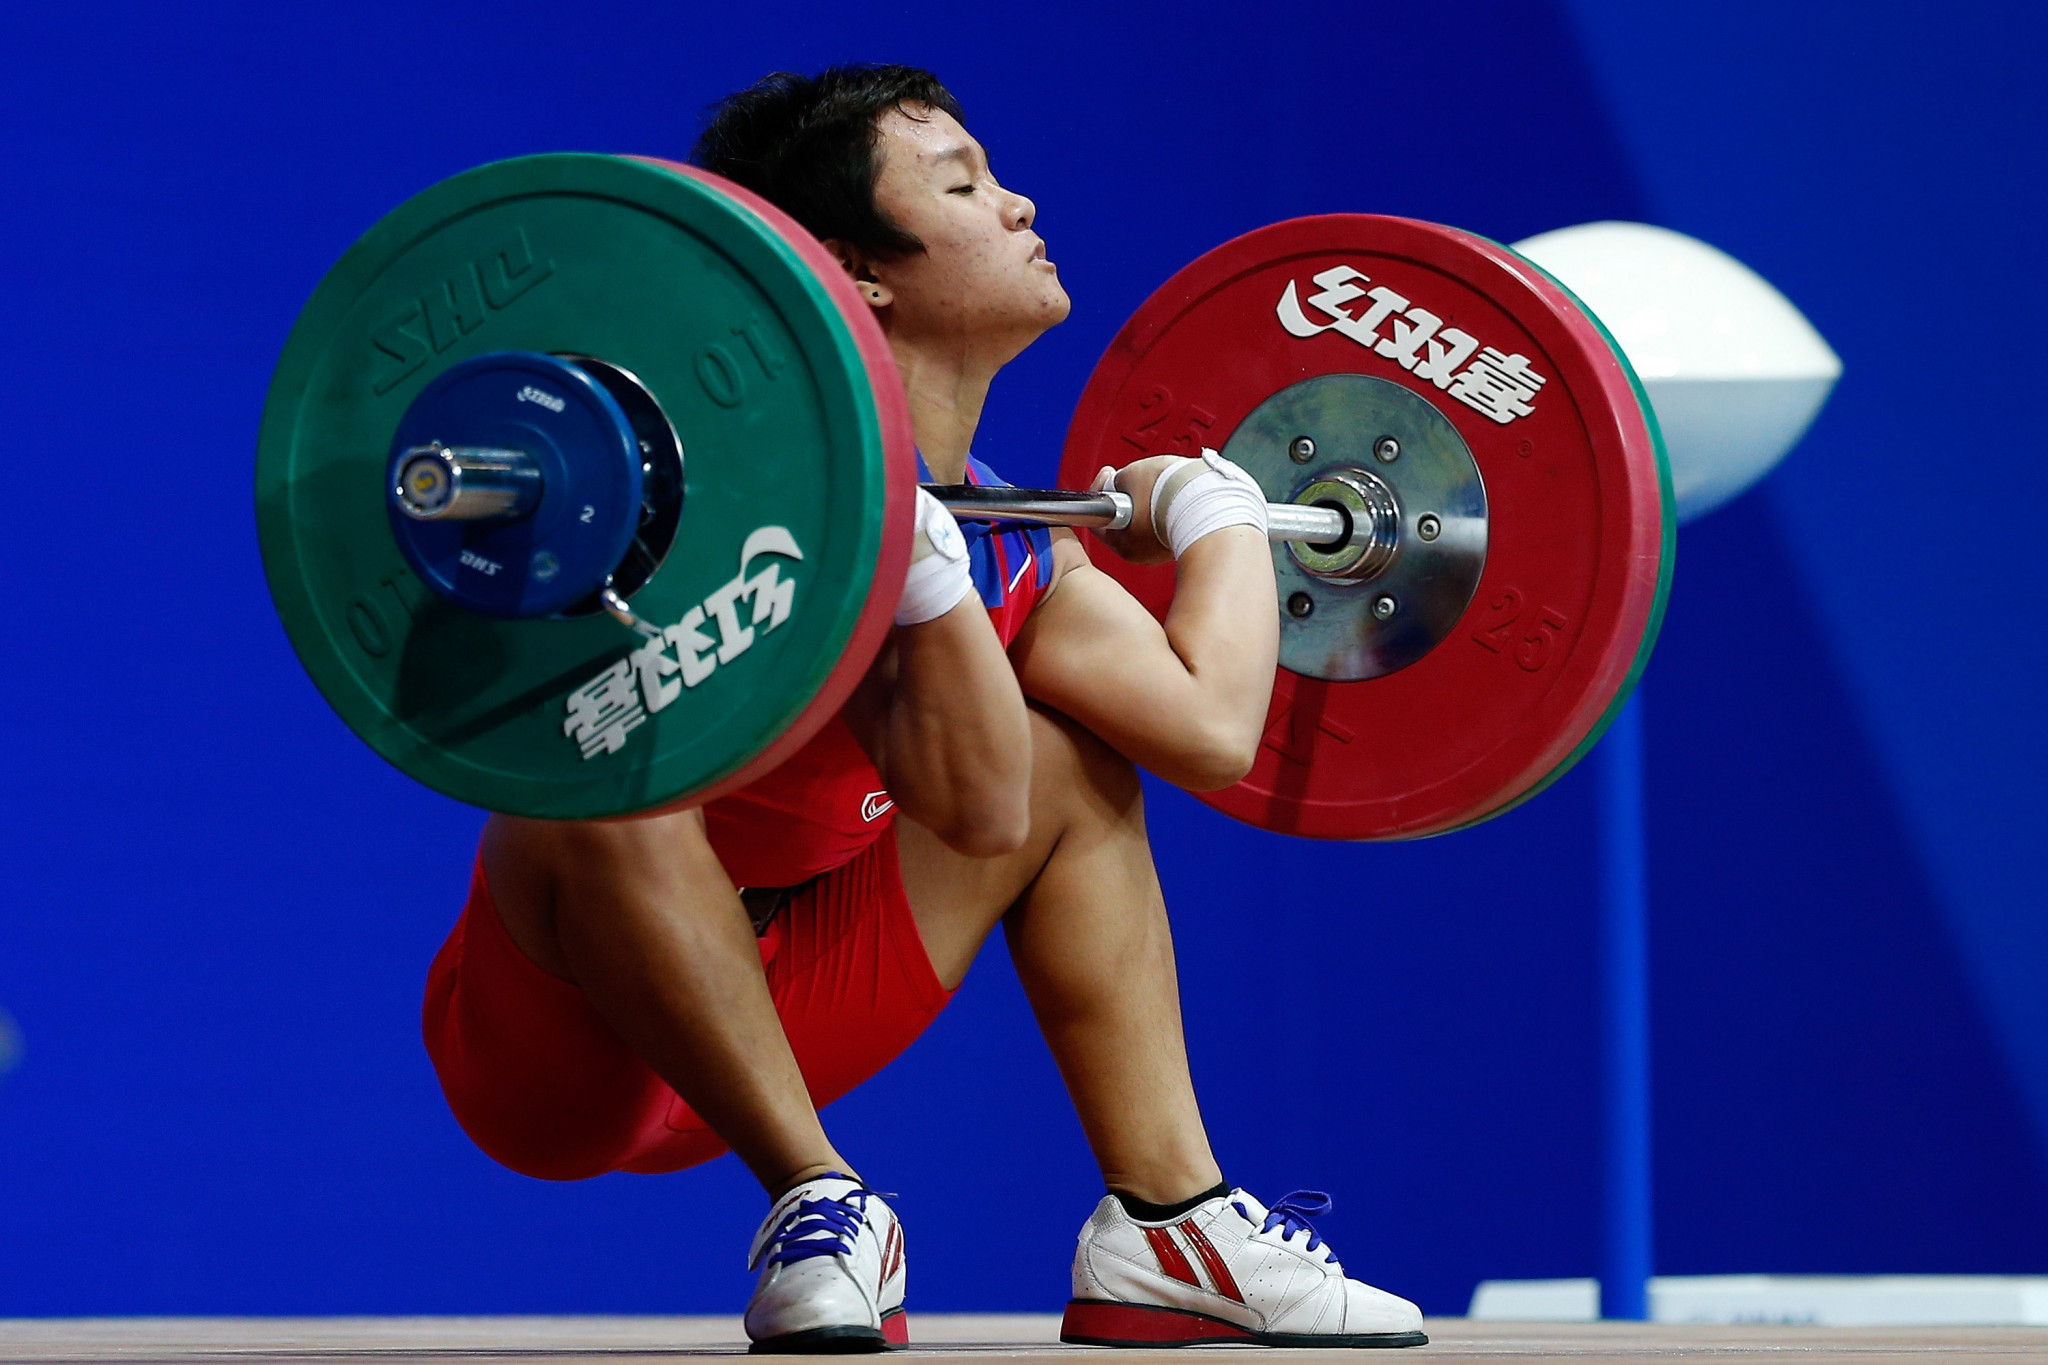 Thailand's doping scandal weightlifting coach is charged and suspended